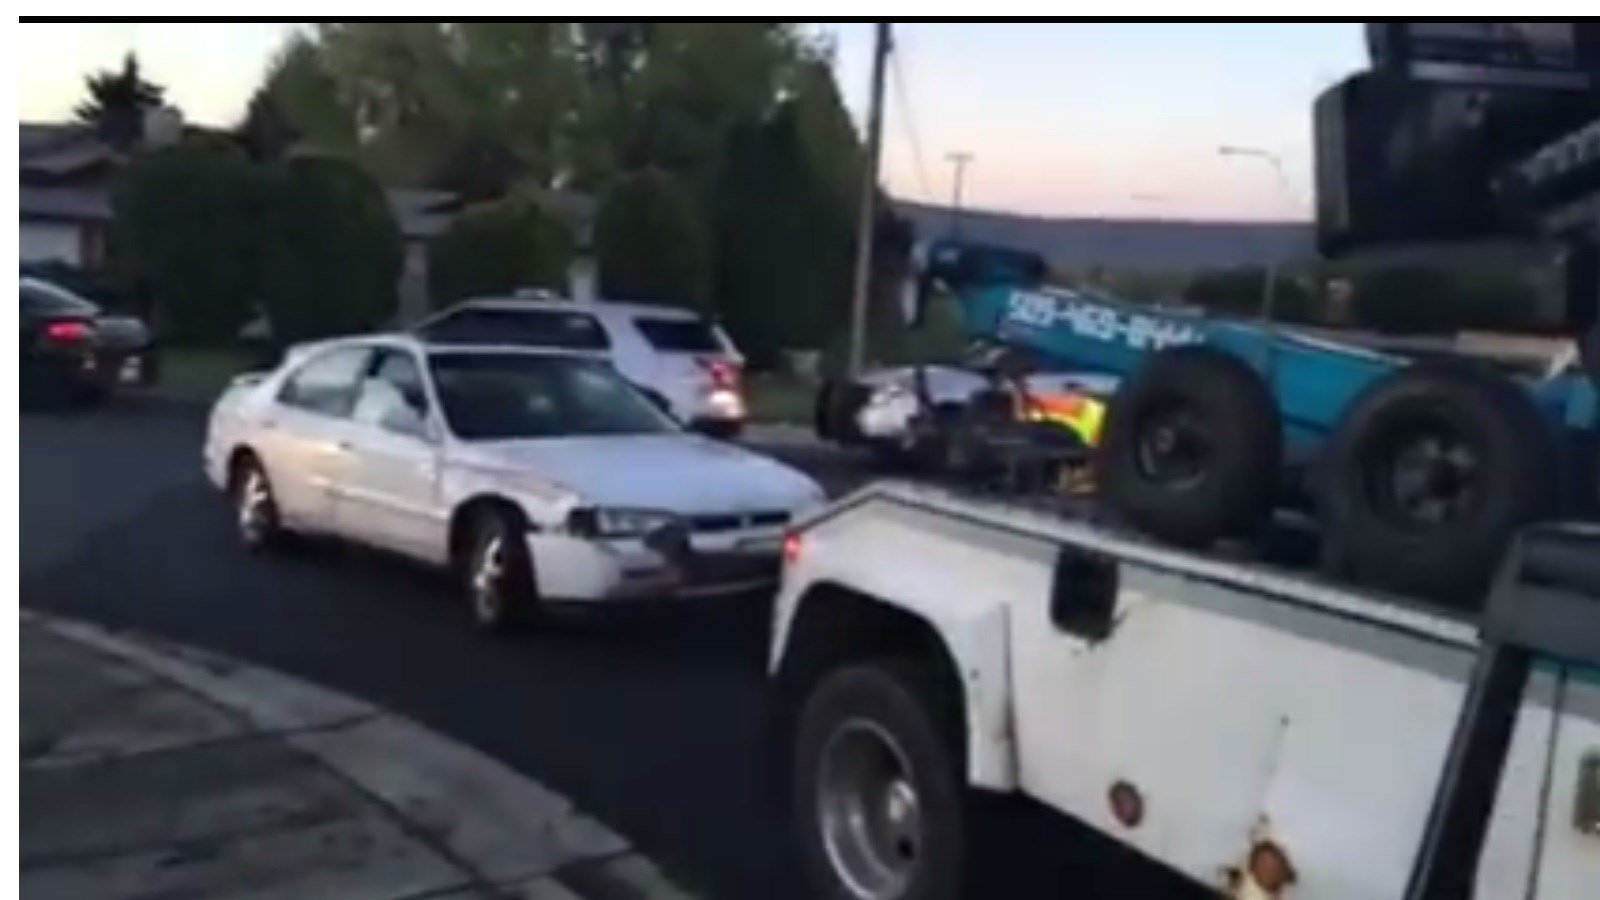 Car involved in high-speed chase being towed